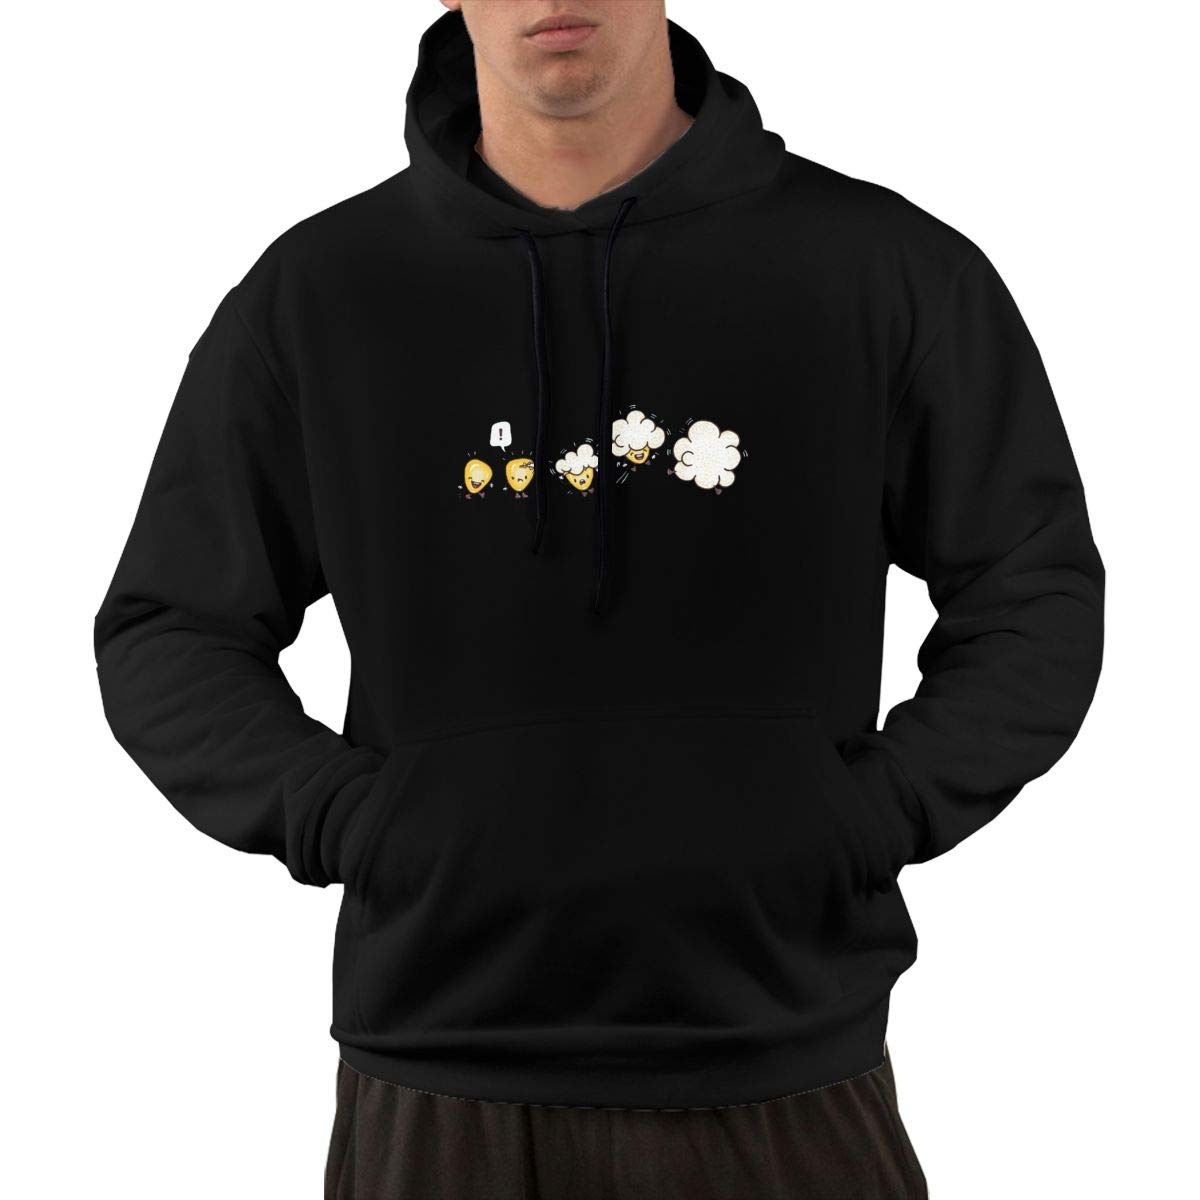 How to Become Popcorns Hoodie Mens Autum Winter Performance Active T-Shirt Hoodie with Plus Size